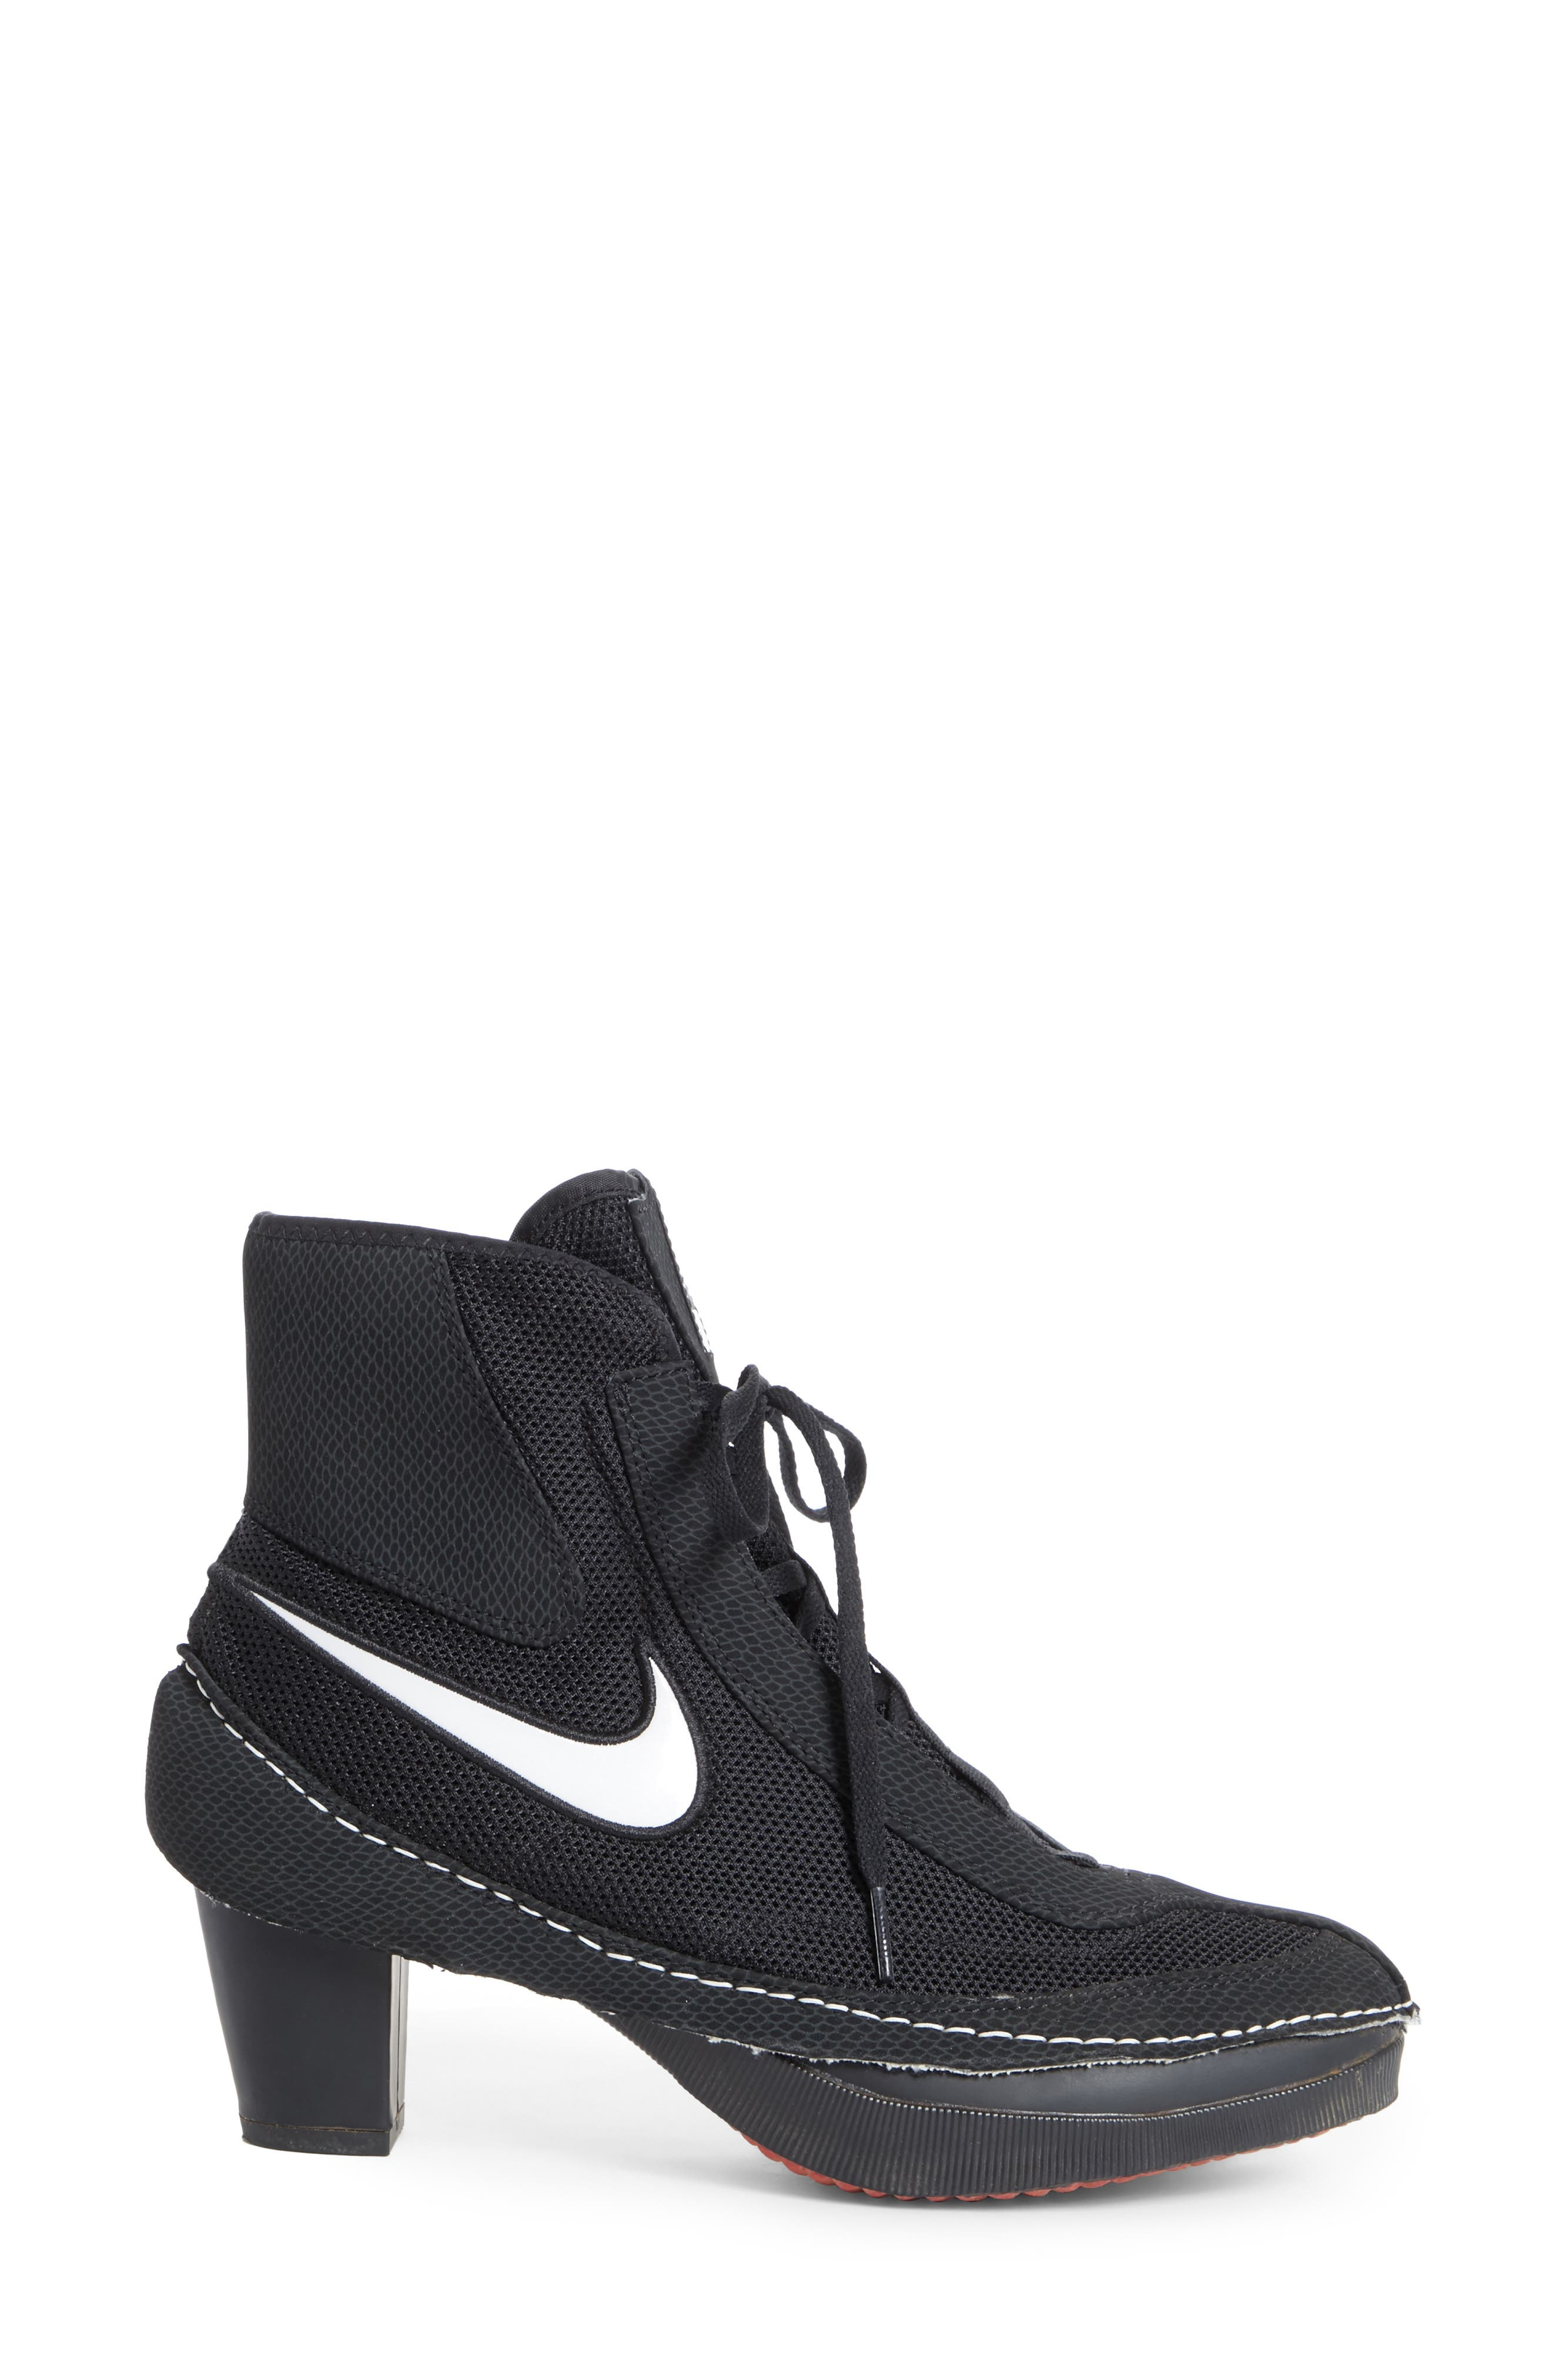 x Nike Heeled Bootie,                             Alternate thumbnail 3, color,                             001